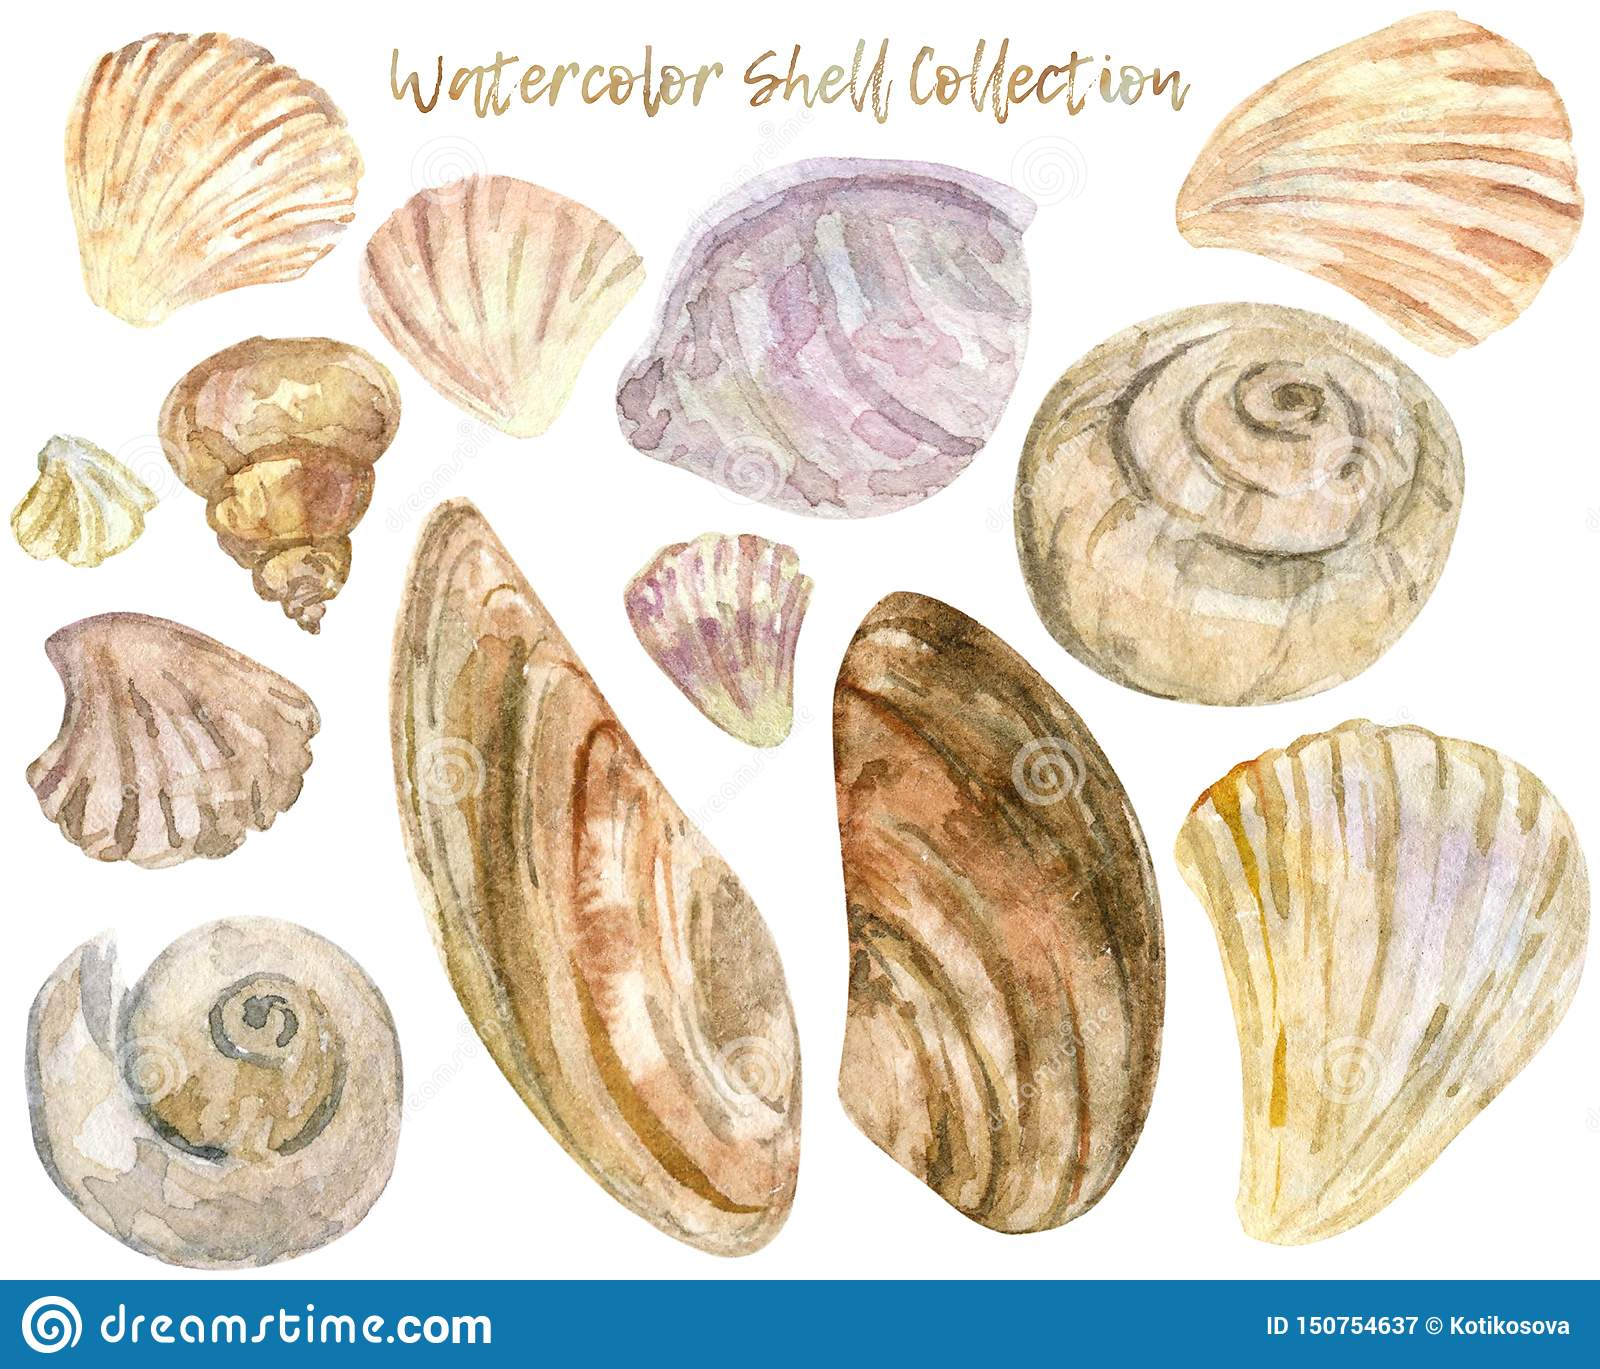 Watercolor shell clip art collection